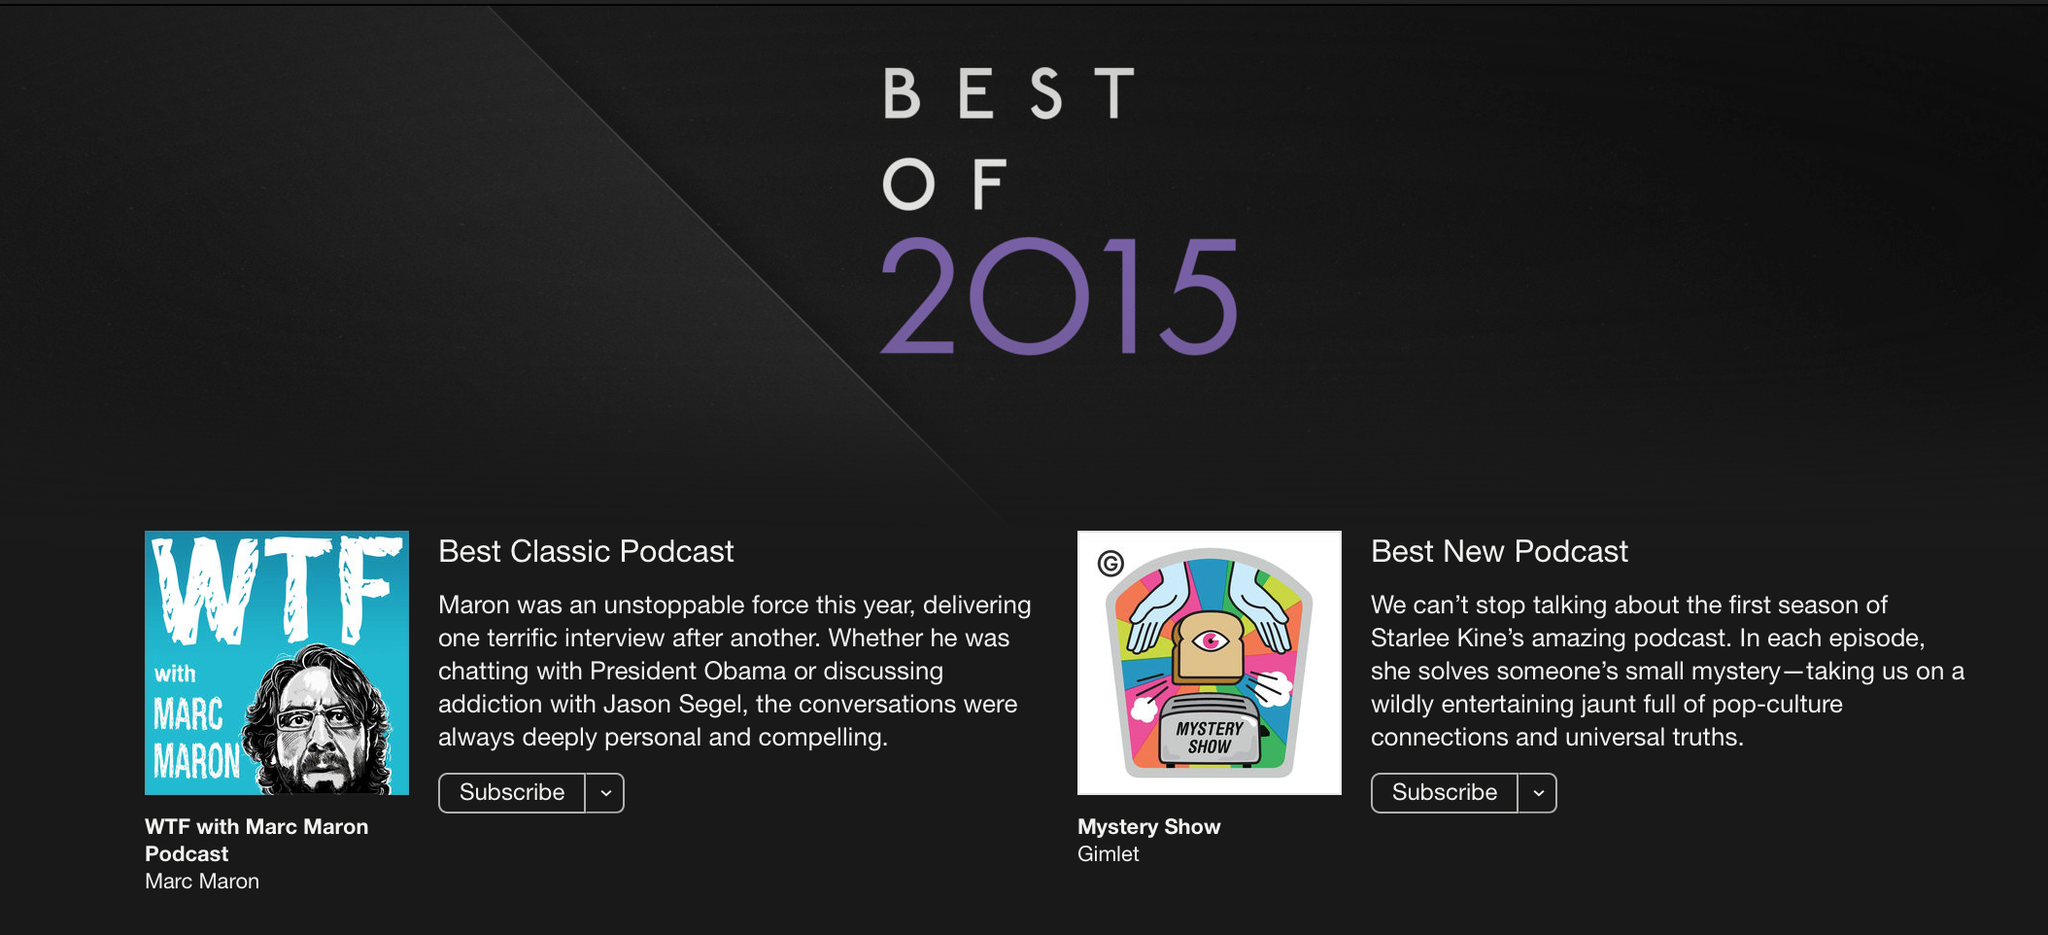 Proud @MysteryShow is iTunes best new podcast of 2015! Sharing stage w/@marcmaron. Wow! @Gimletmedia https://t.co/yHRatZQzhQ